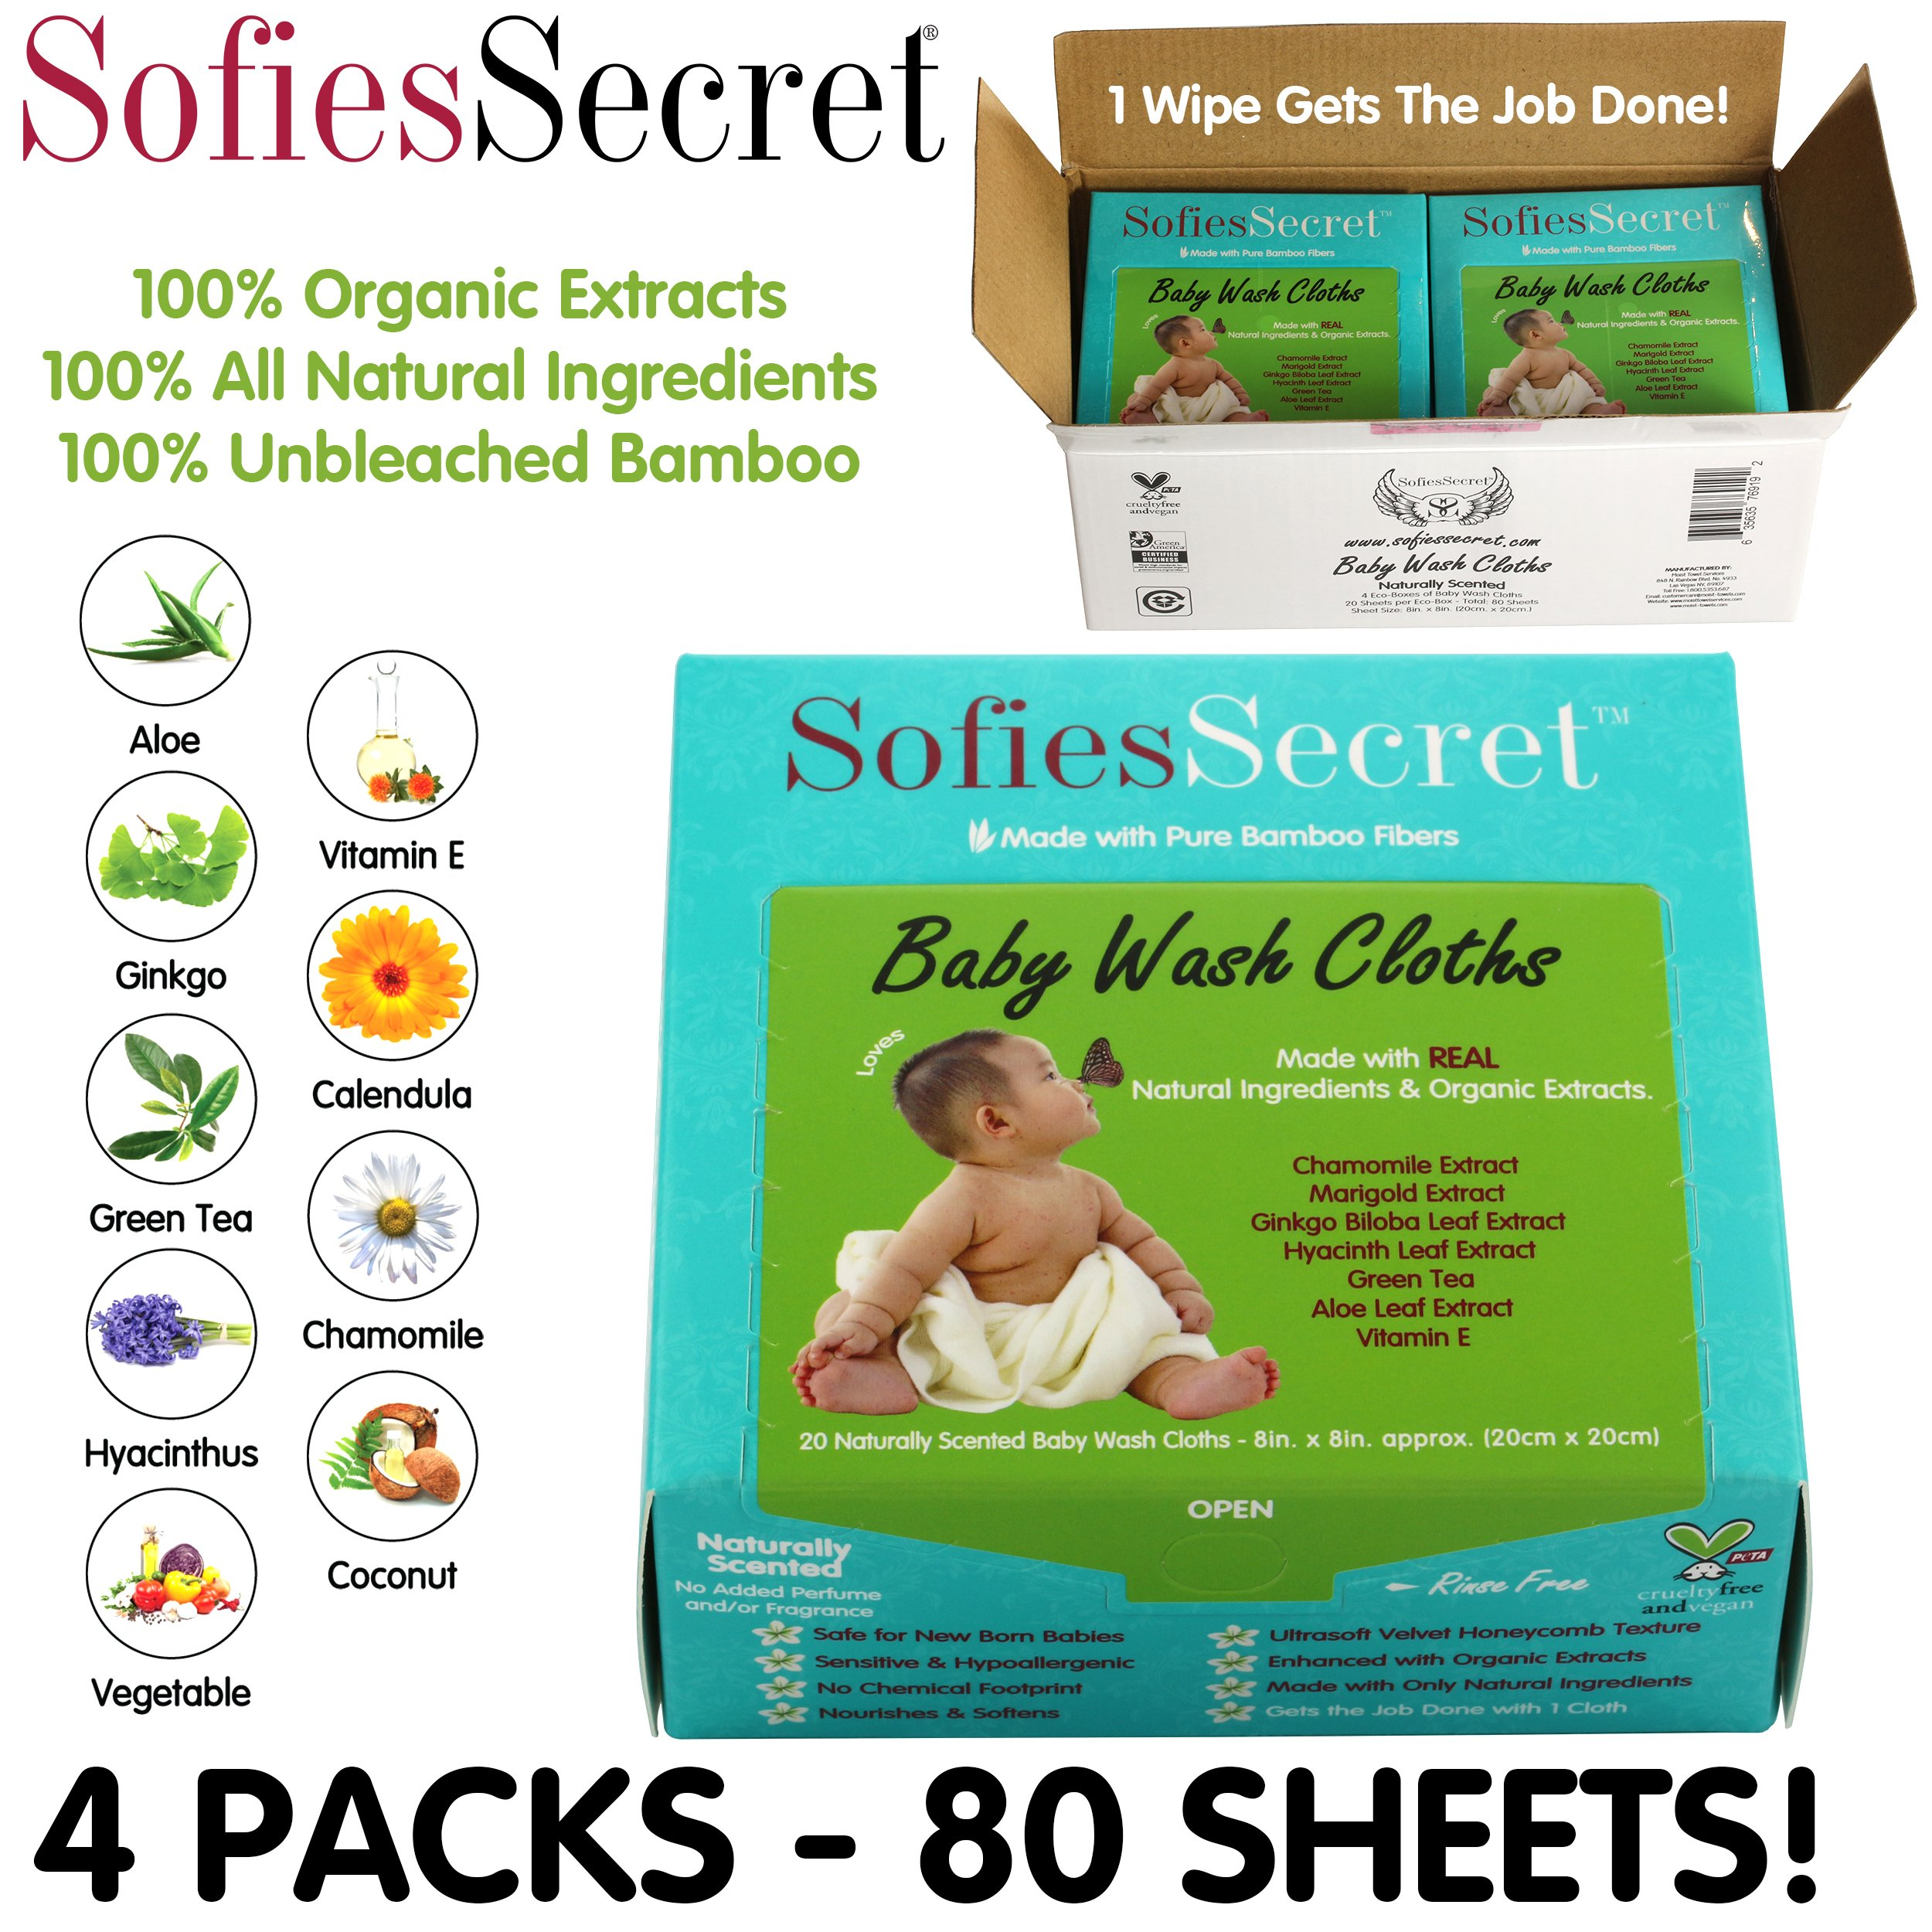 SofiesSecret Fragrance FREE Bamboo Baby Wipes, 100% Organic &Natural Ingredients, 80 Count, 8'' x 8'', Hypoallergenic, Sensitive